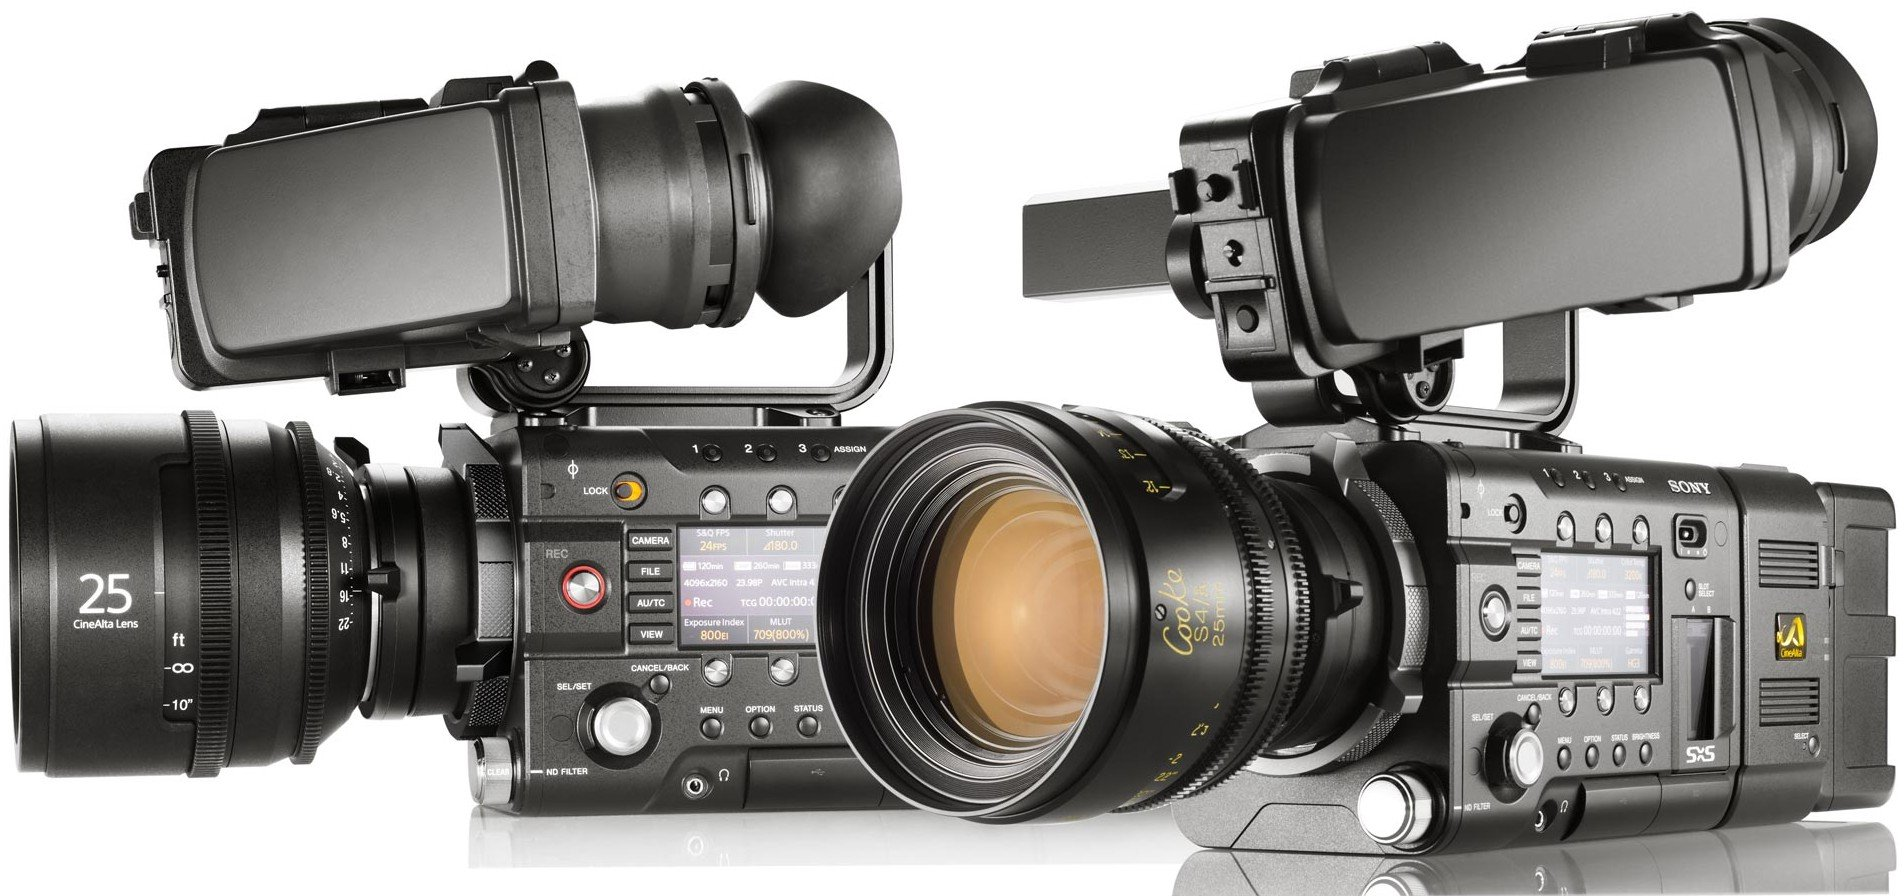 Sony Gets Serious with F5 and F55 Digital Cinema Cameras: 4K, 240FPS